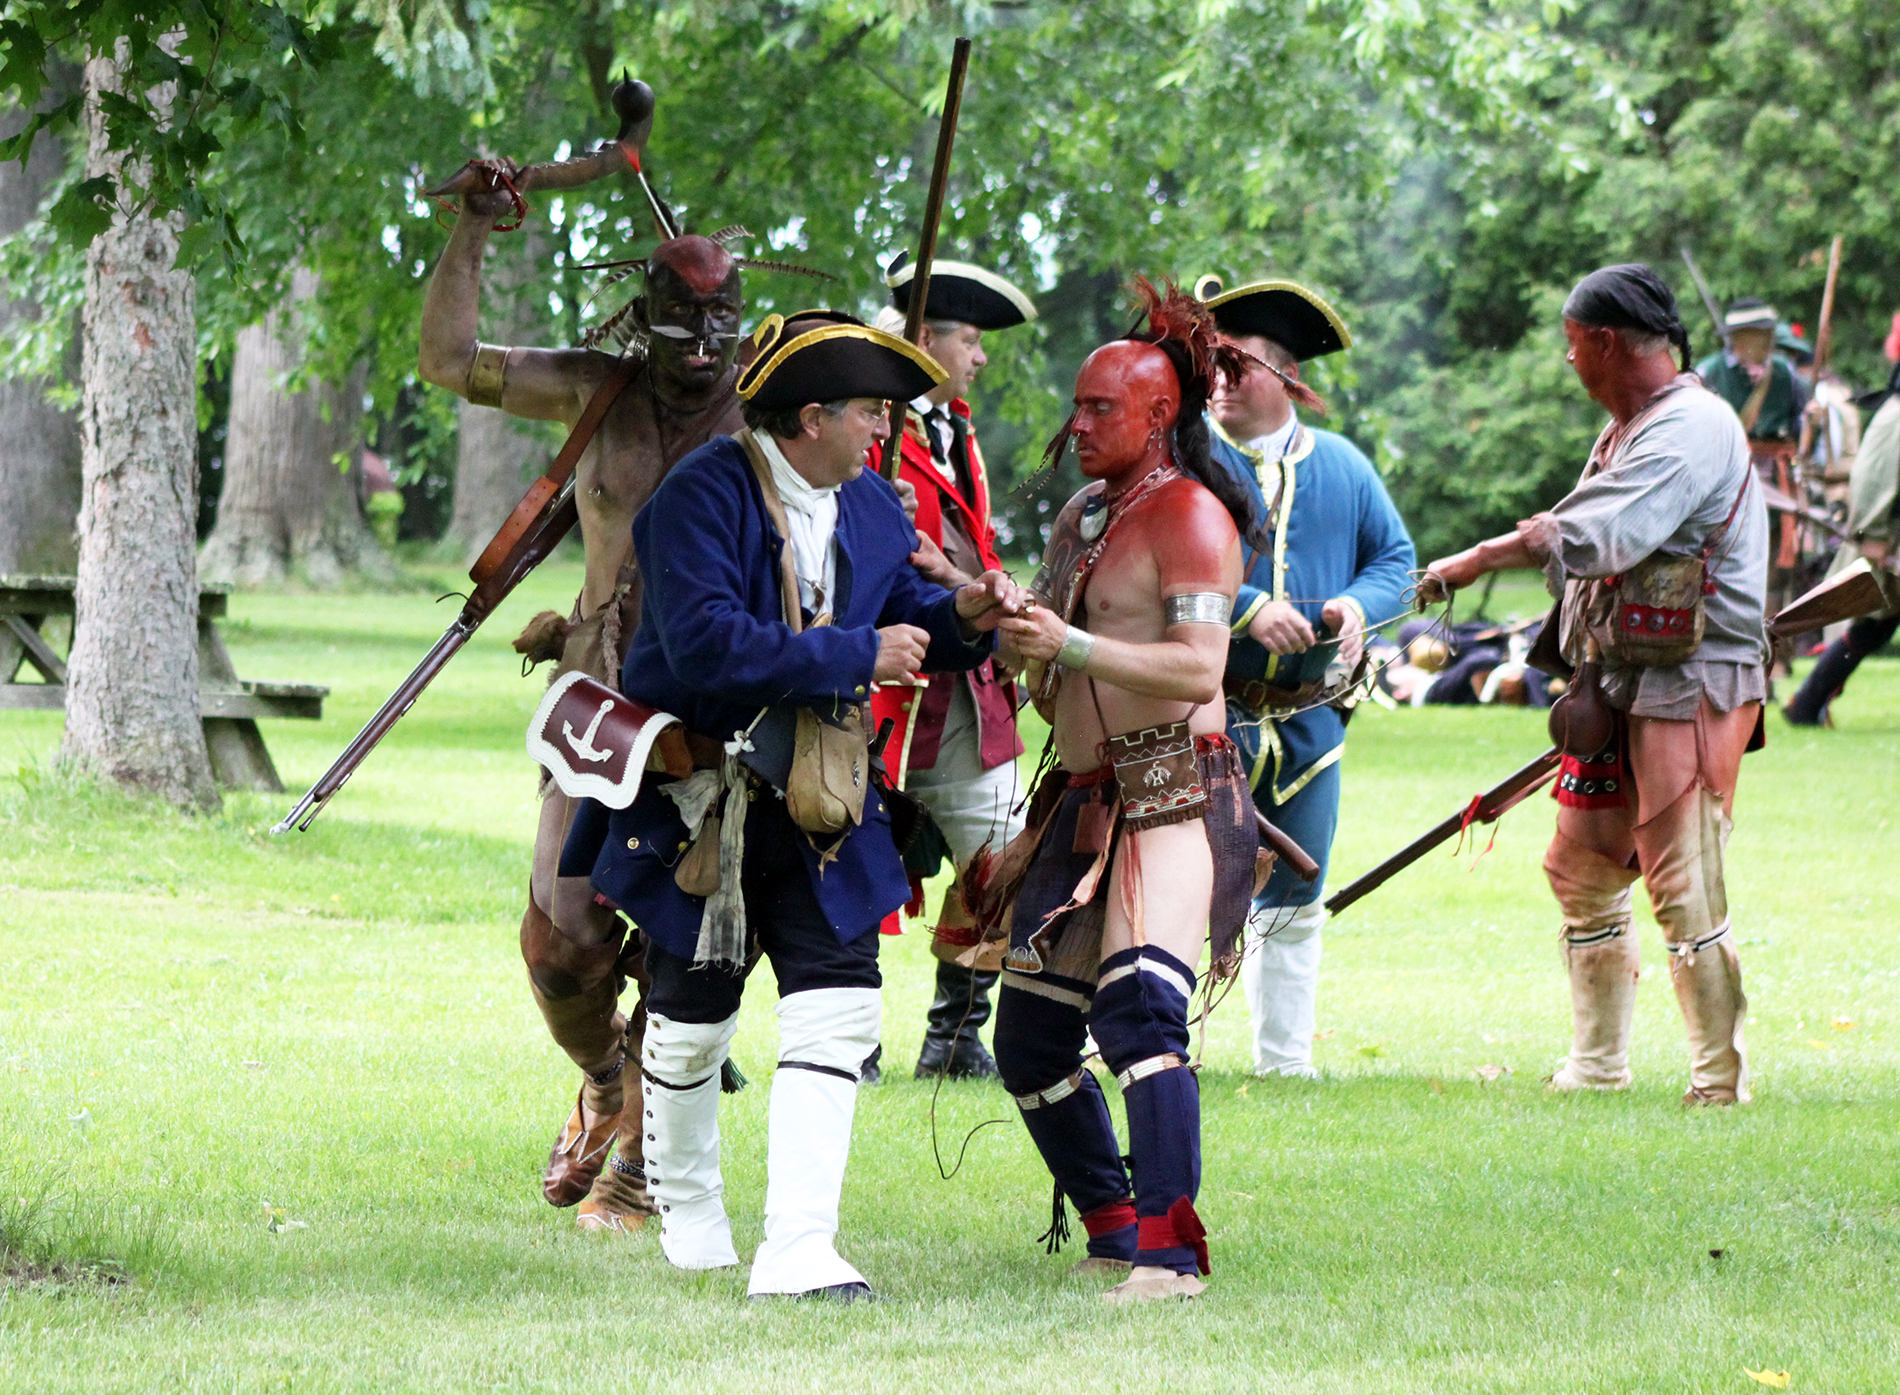 the events after the french and indian war In the end, the events of the french and indian war played a major role leading up to the american revolution interesting facts about the french and indian war daniel boone was a.